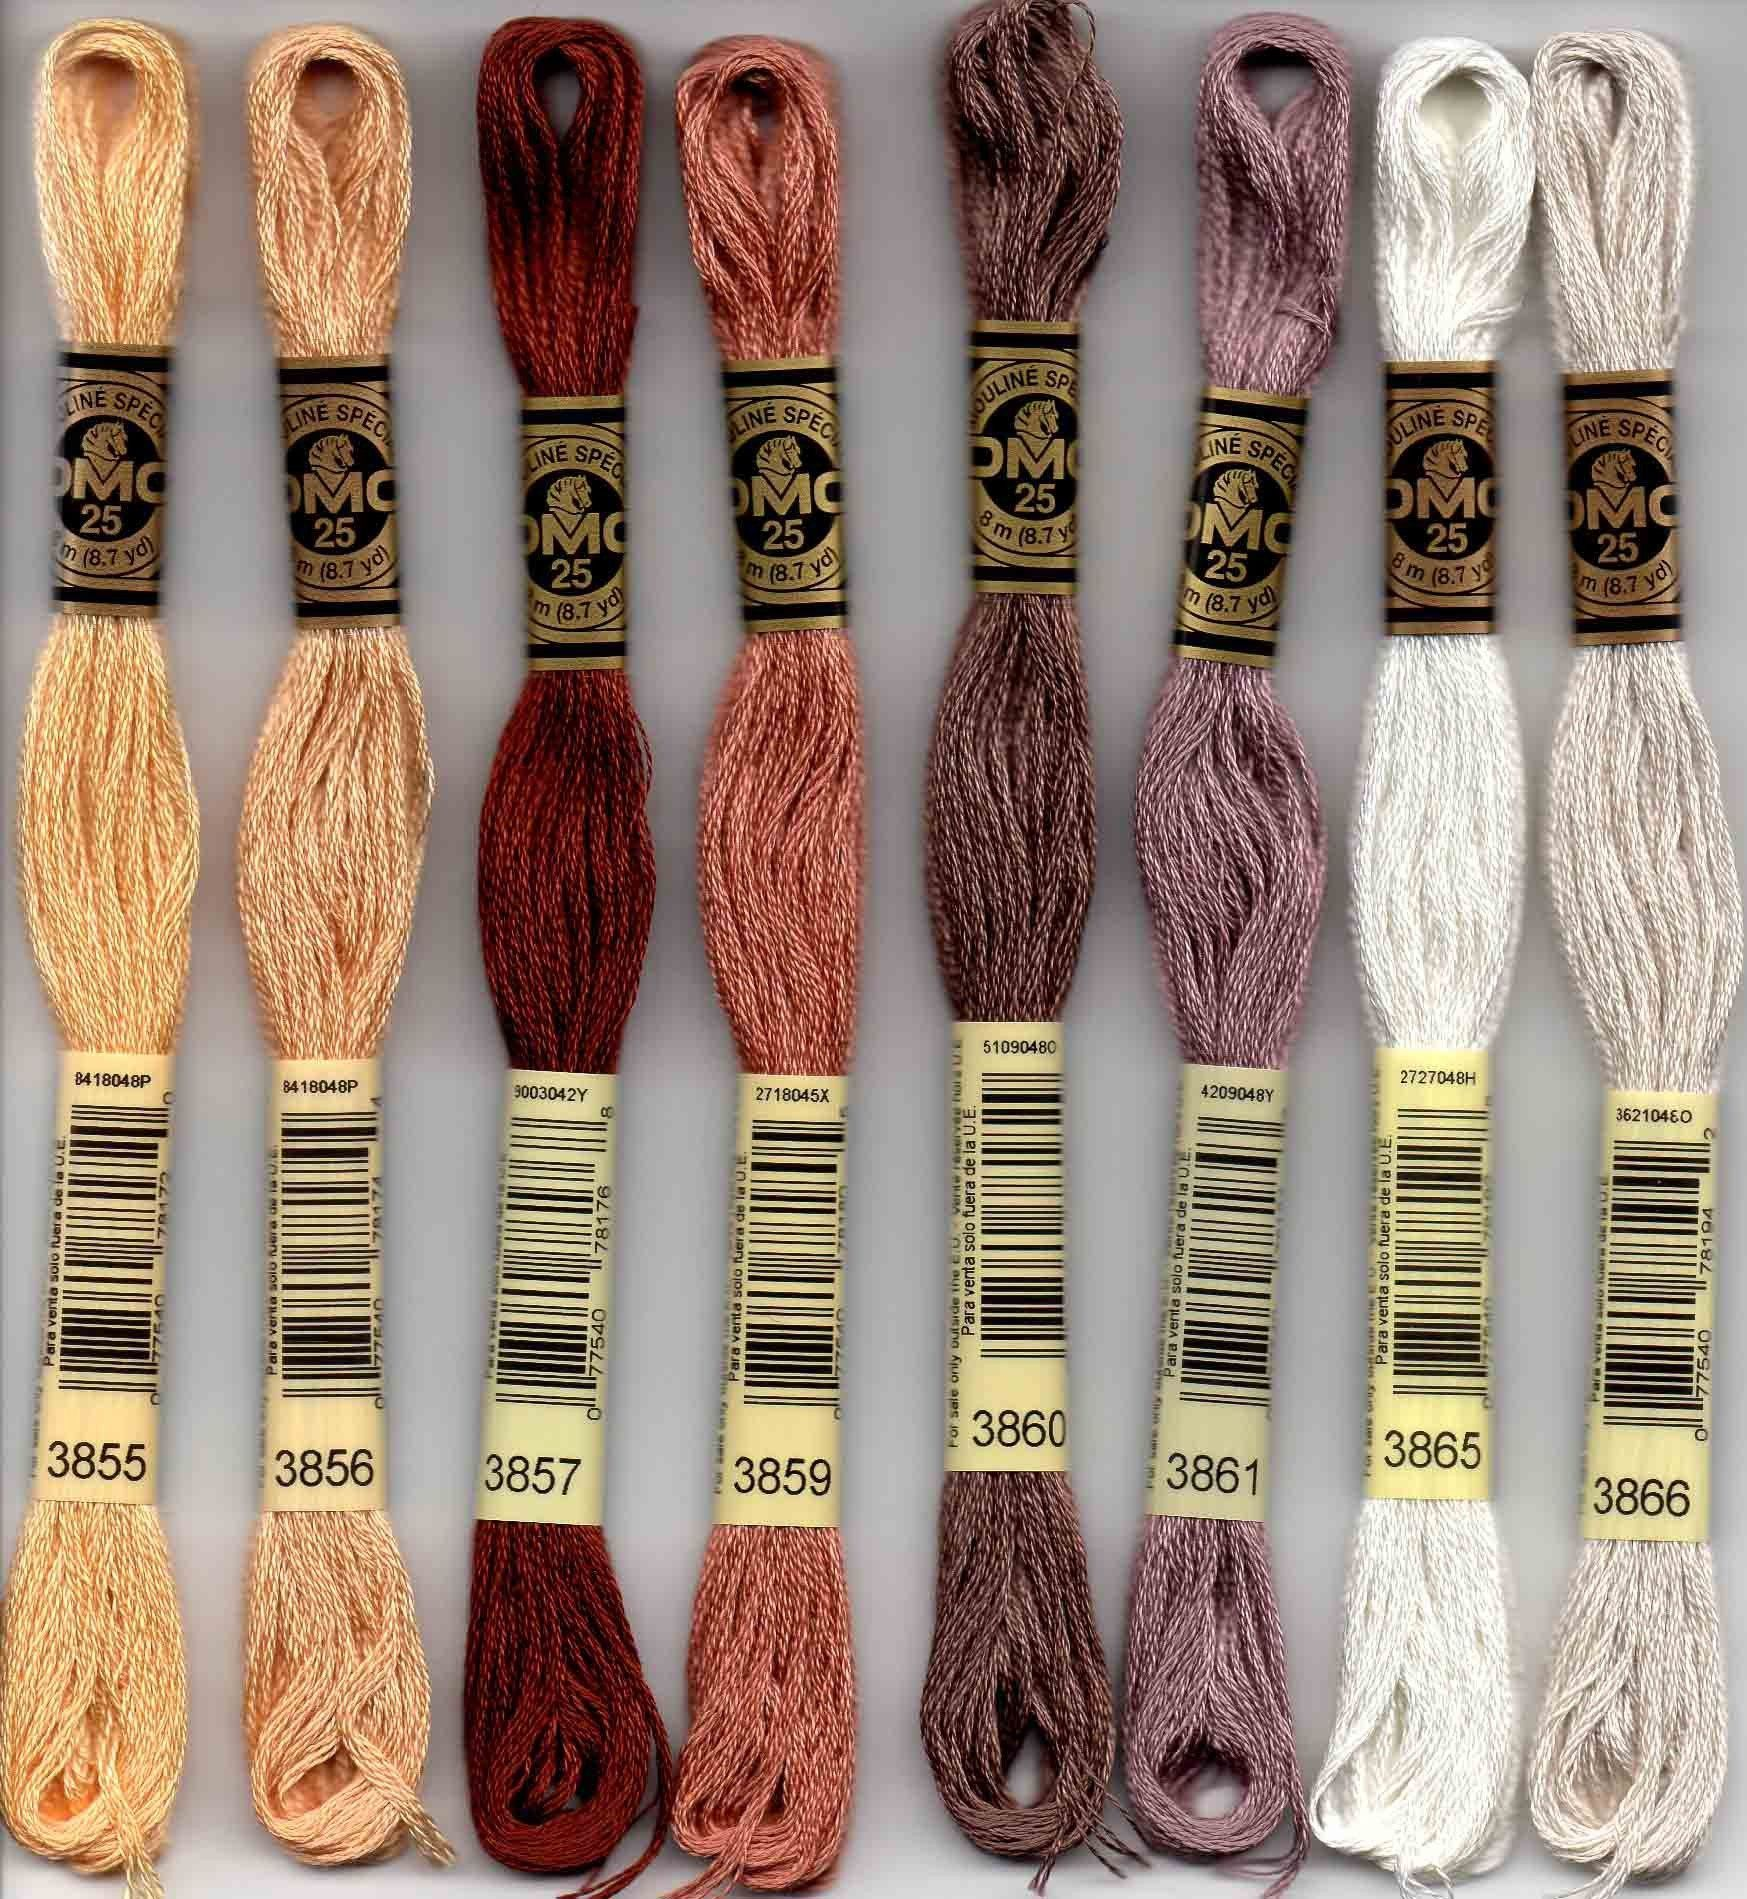 Colour 3023 Light Brown Gray DMC Stranded Cotton Embroidery Floss